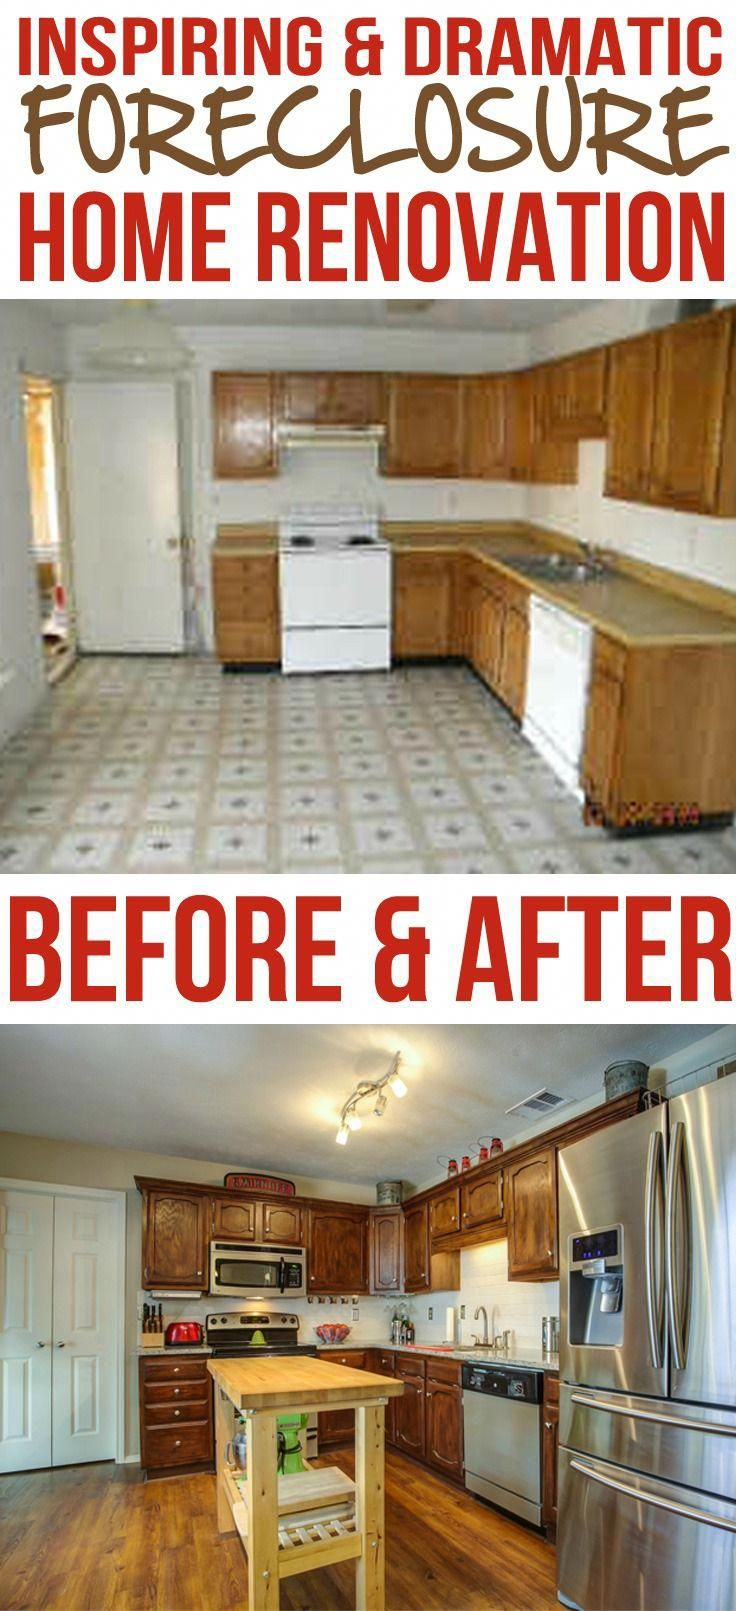 Forclosure Remodel: Before And After Images Of An Amazing Foreclosure Home